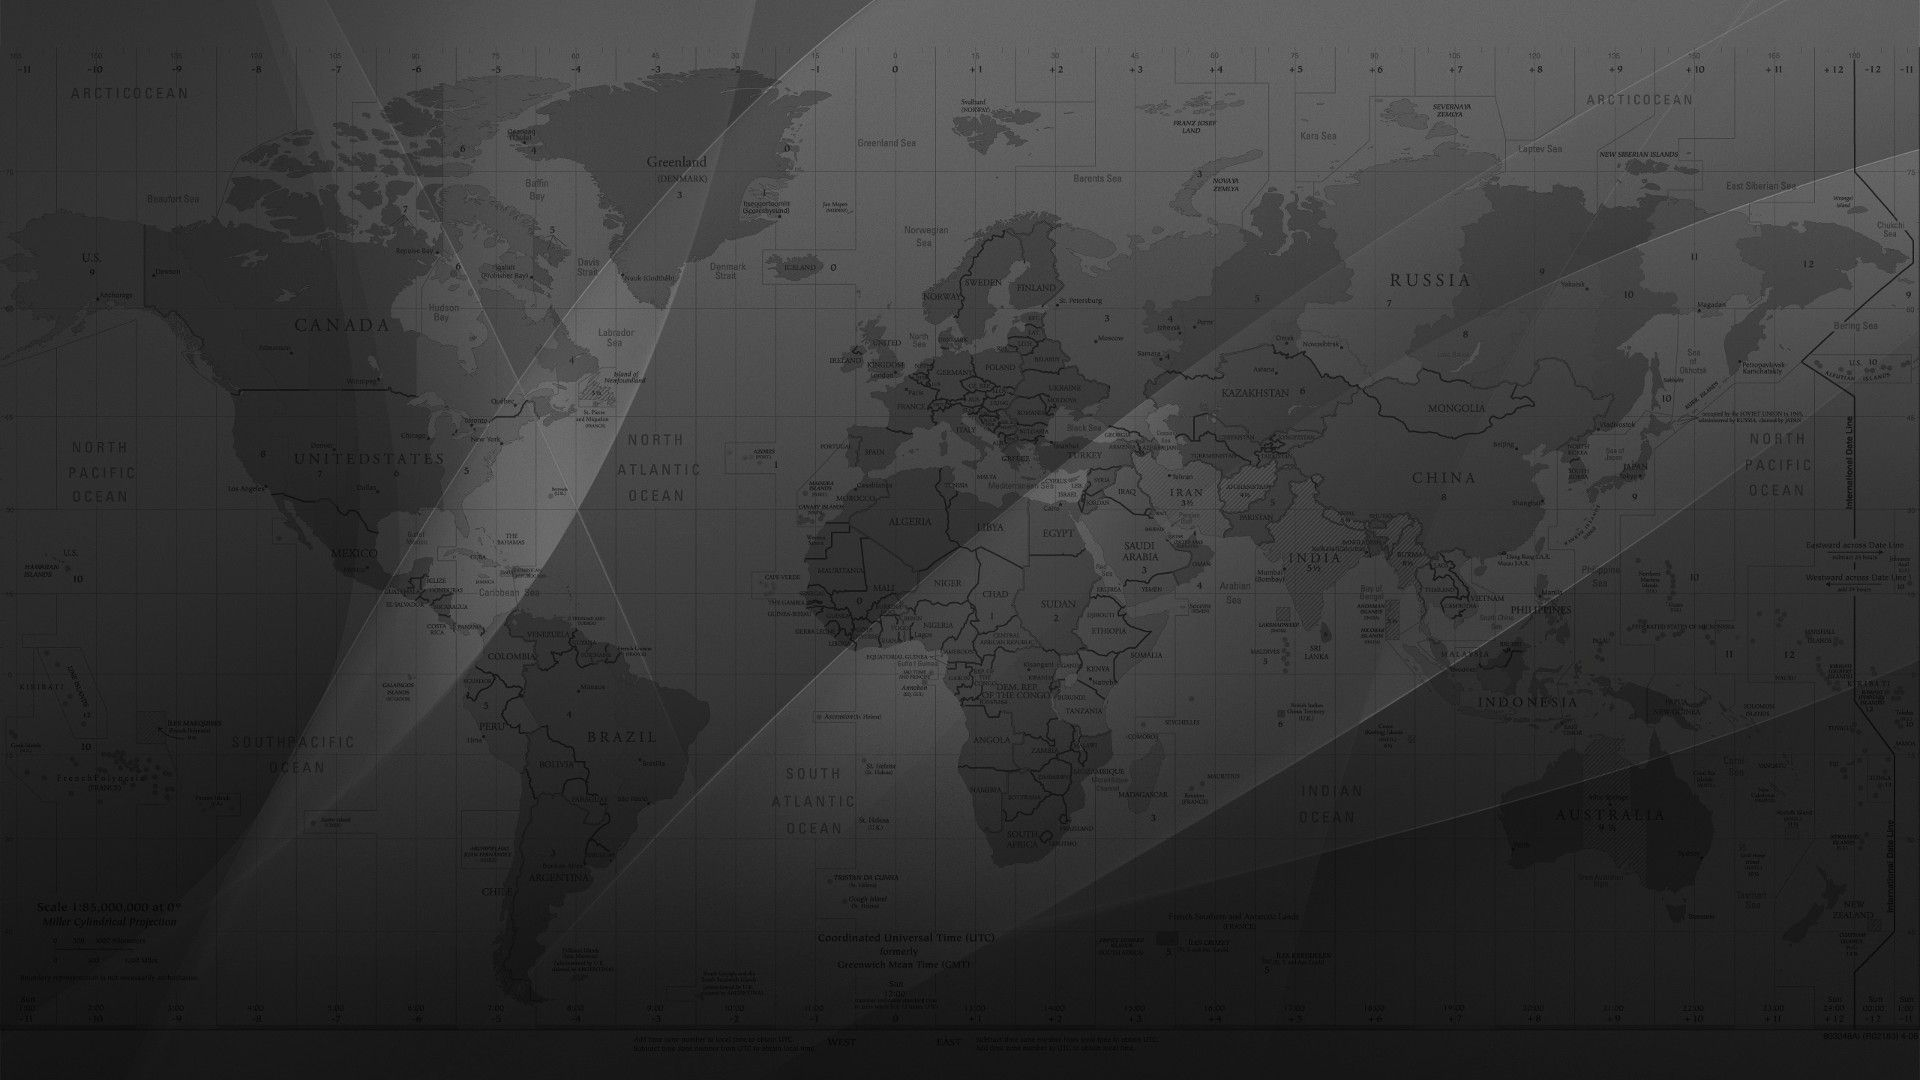 Maps Monochrome World Map Greyscale View, Change The Size